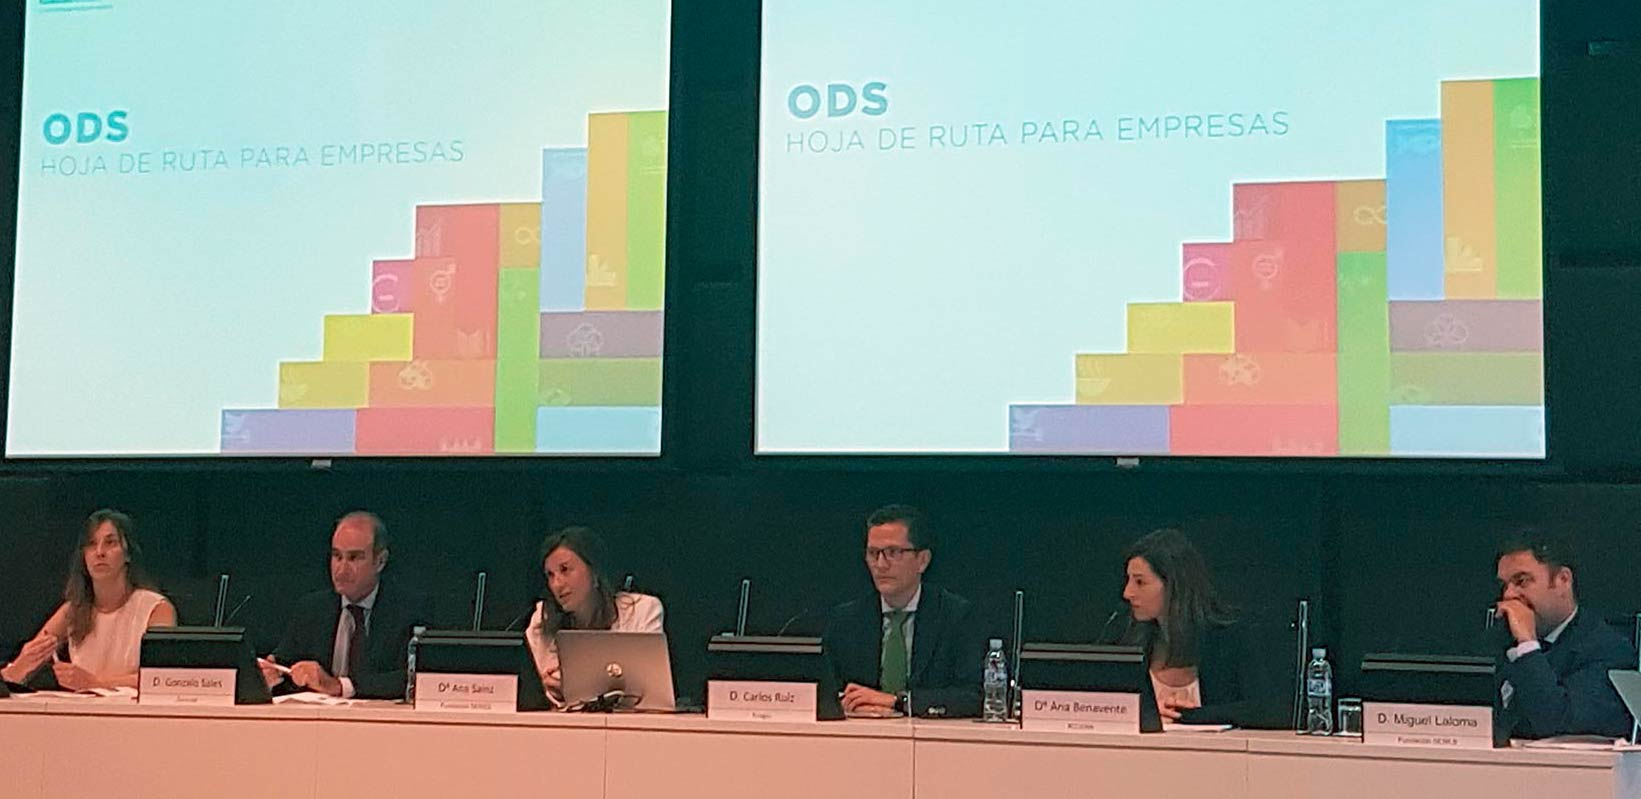 Fundación SERES presents Roadmap for Companies, a new guide for the implementation of SDGs in the business